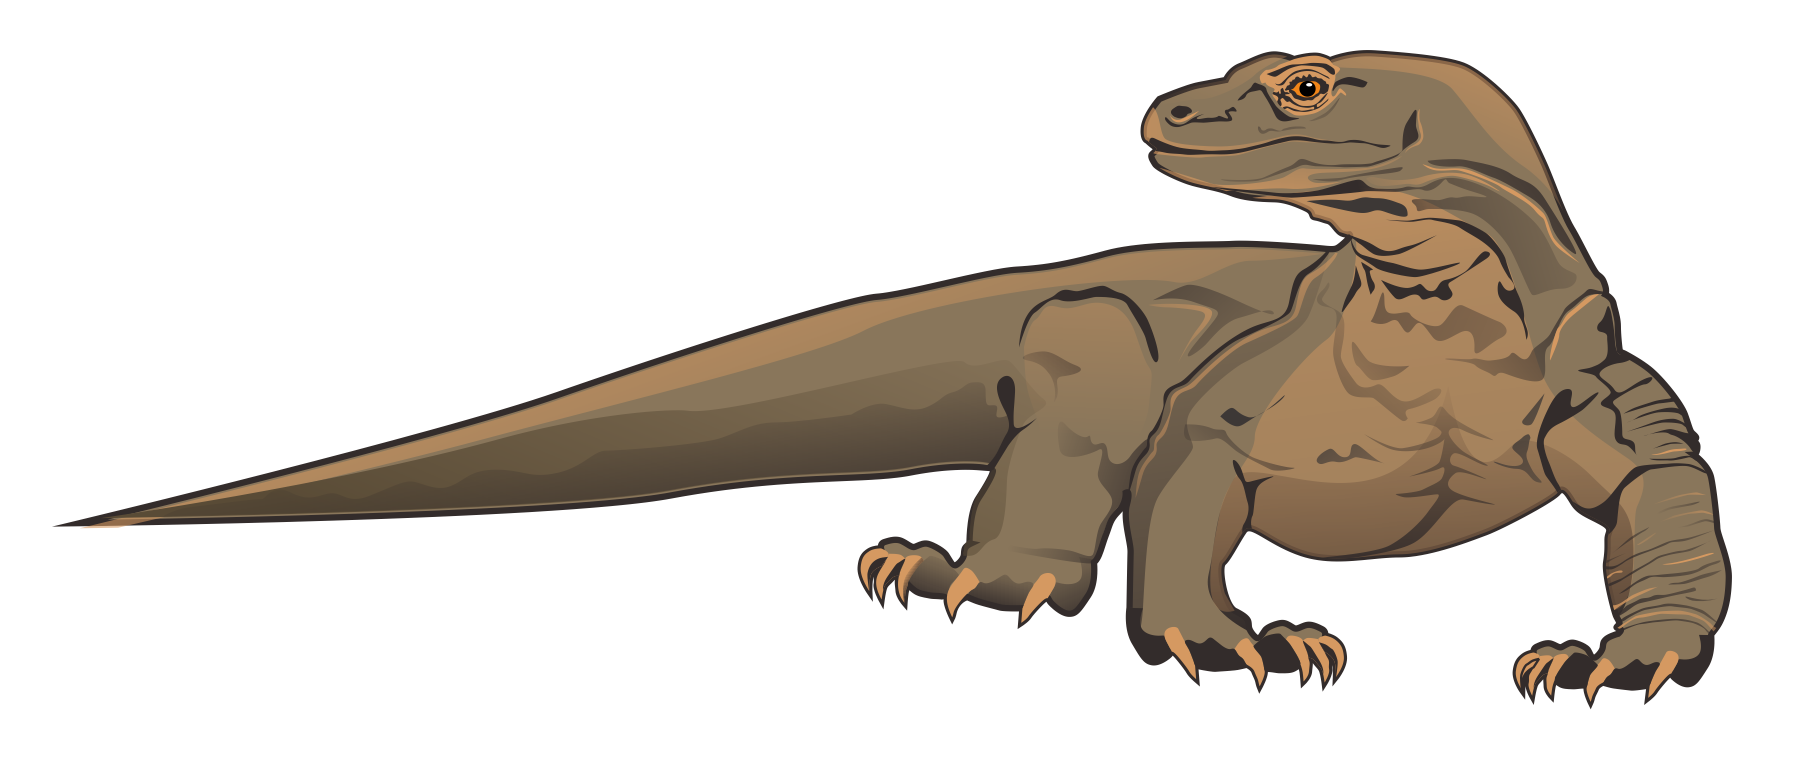 Bearded Dragon clipart #20, Download drawings